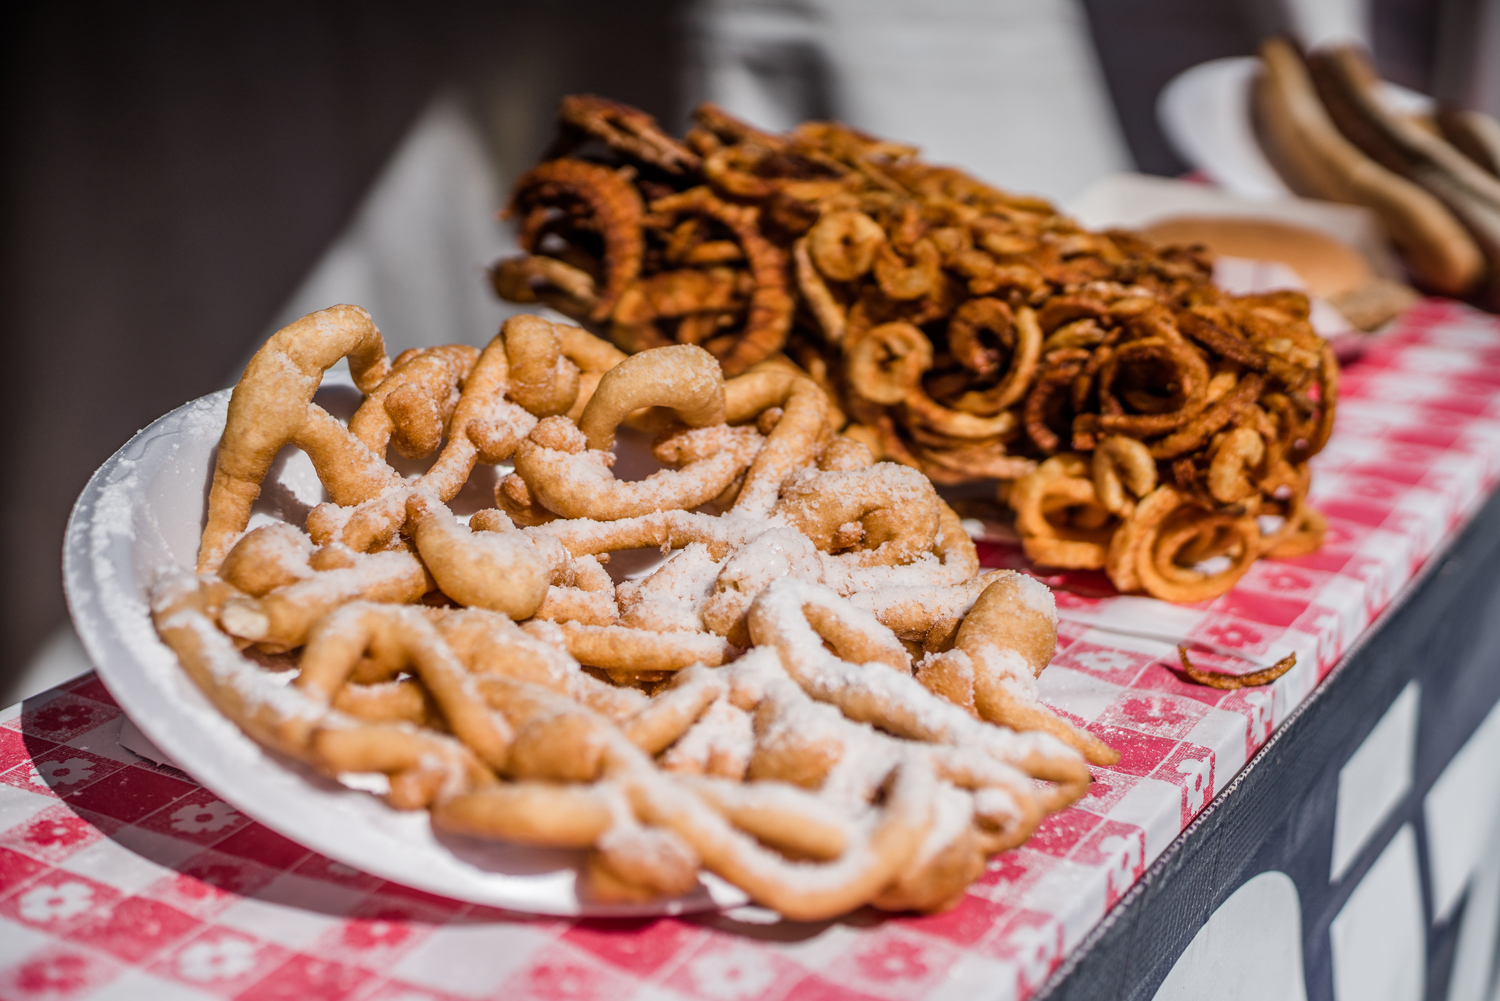 Funnel cake is one of the most popular food items available at Riverfest.